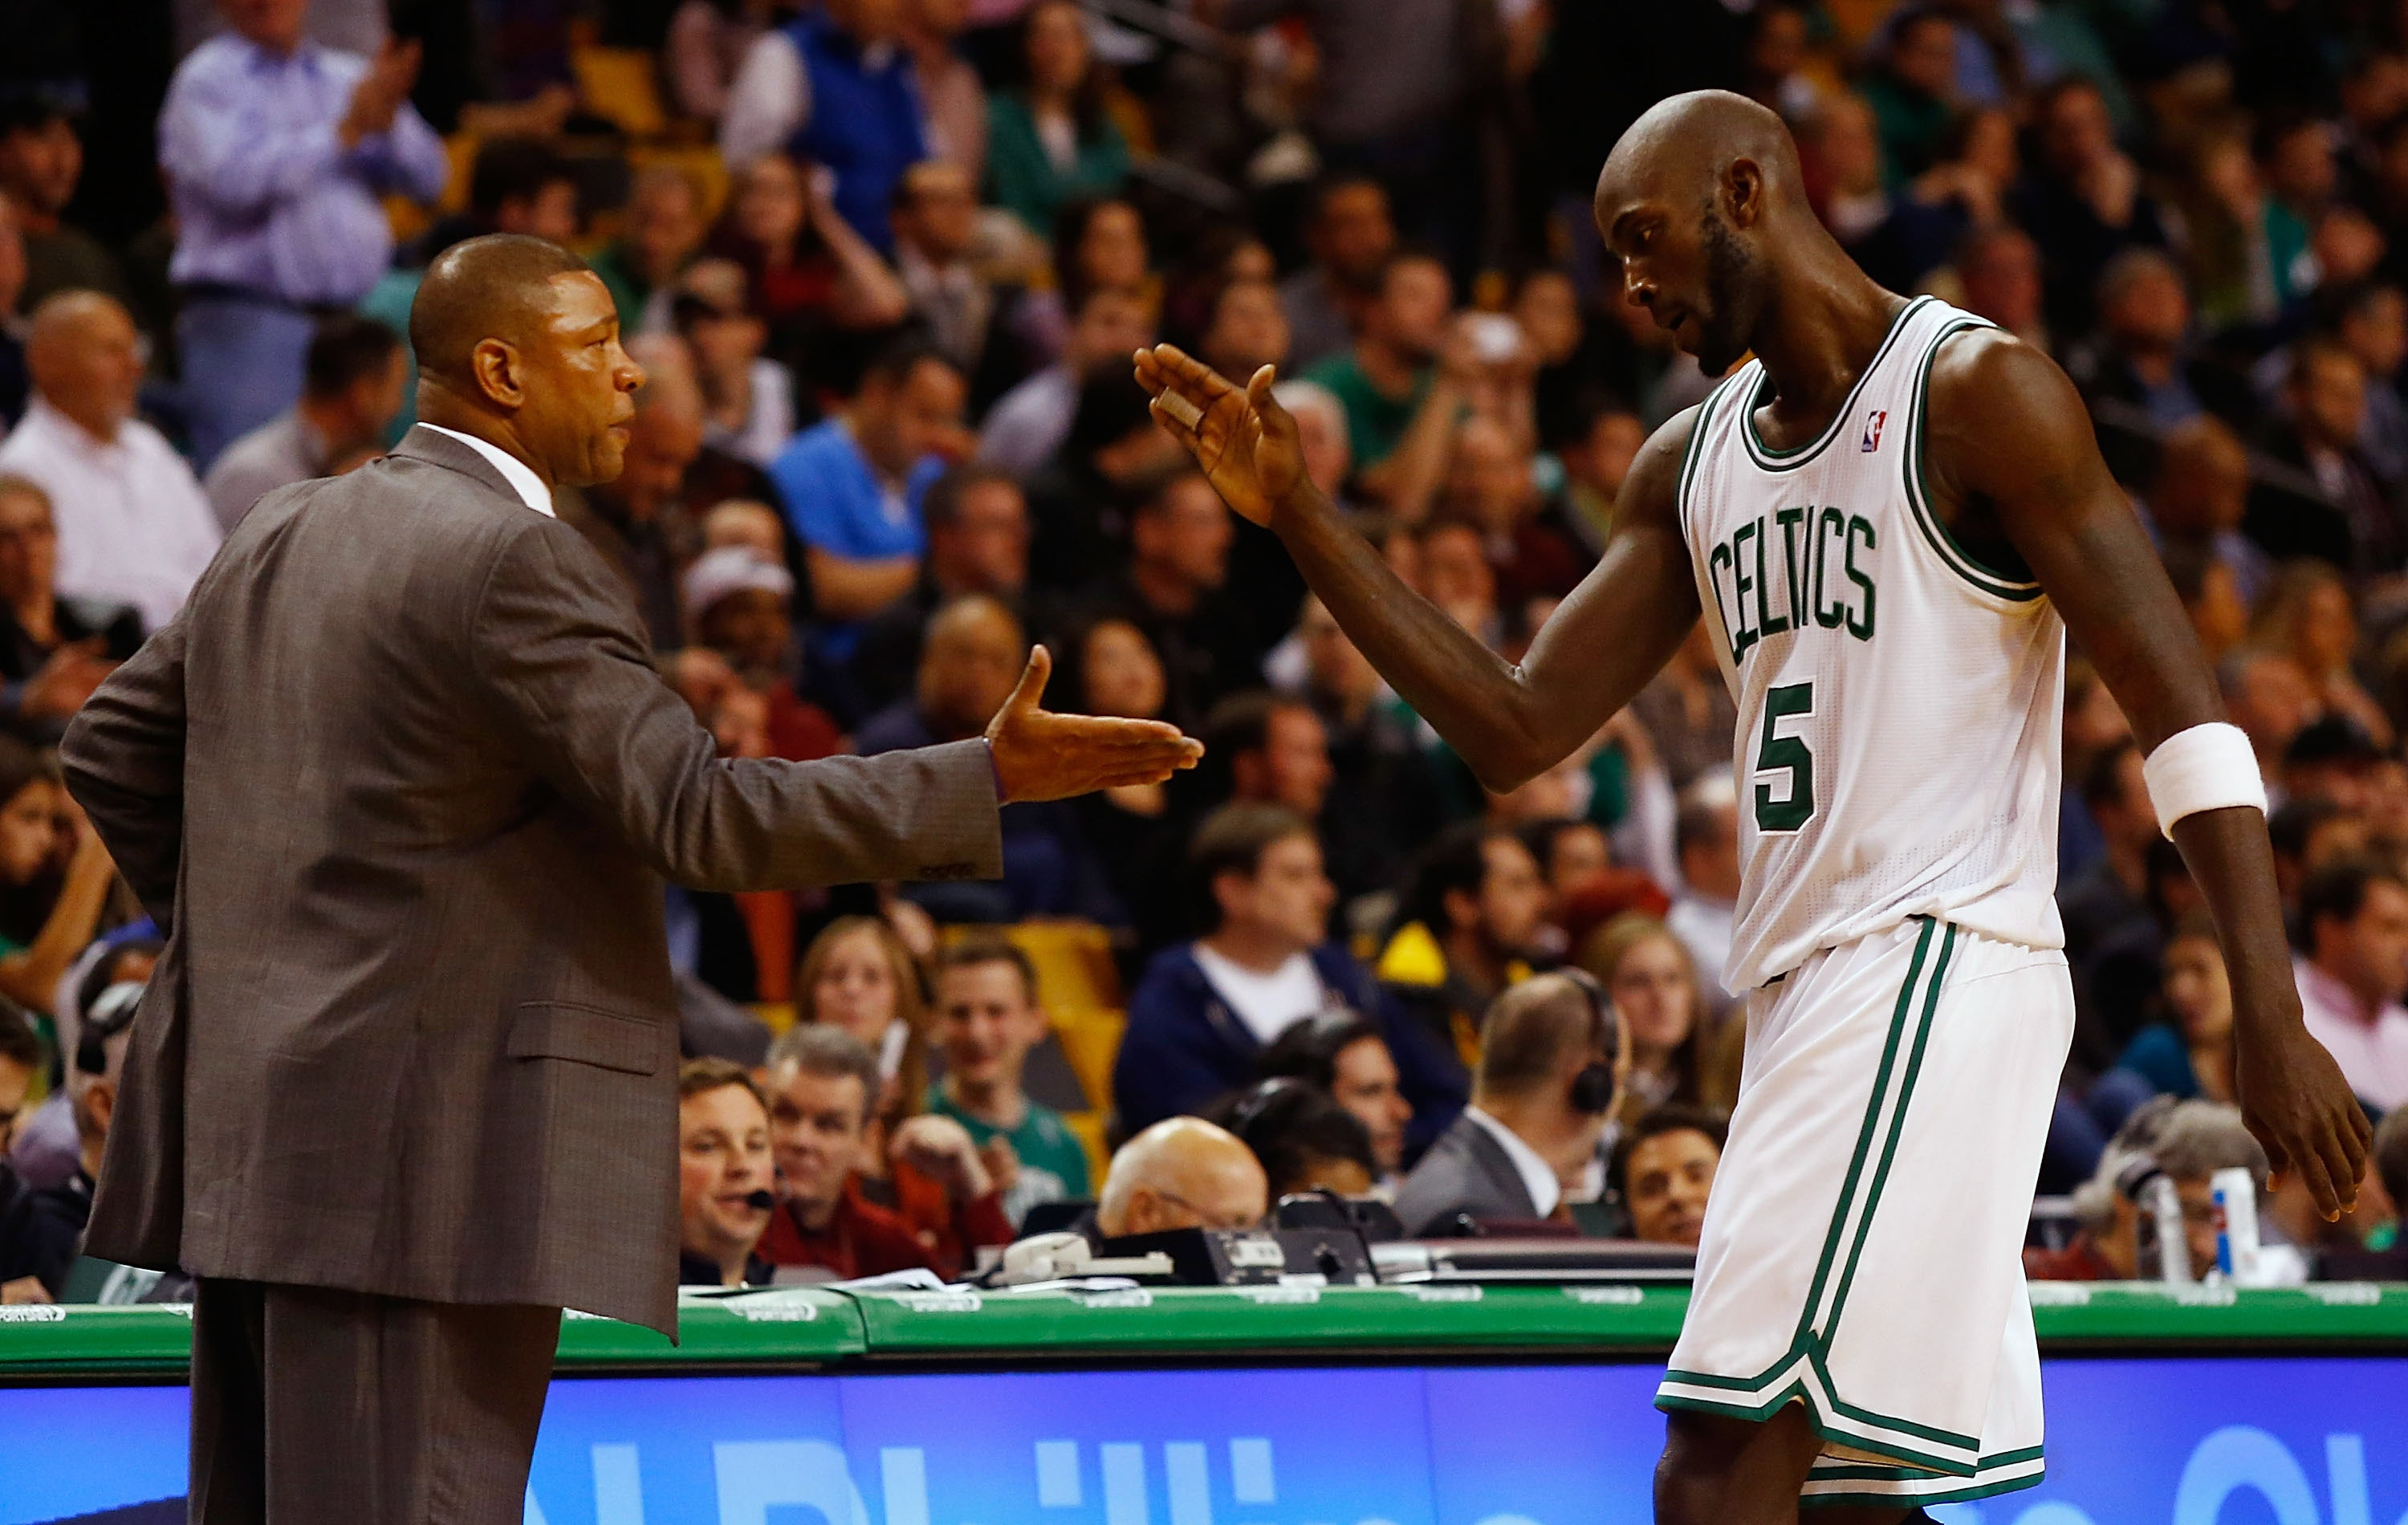 Doc Rivers and Kevin Garnett could soon be headed to Los Angeles. (Getty Images)